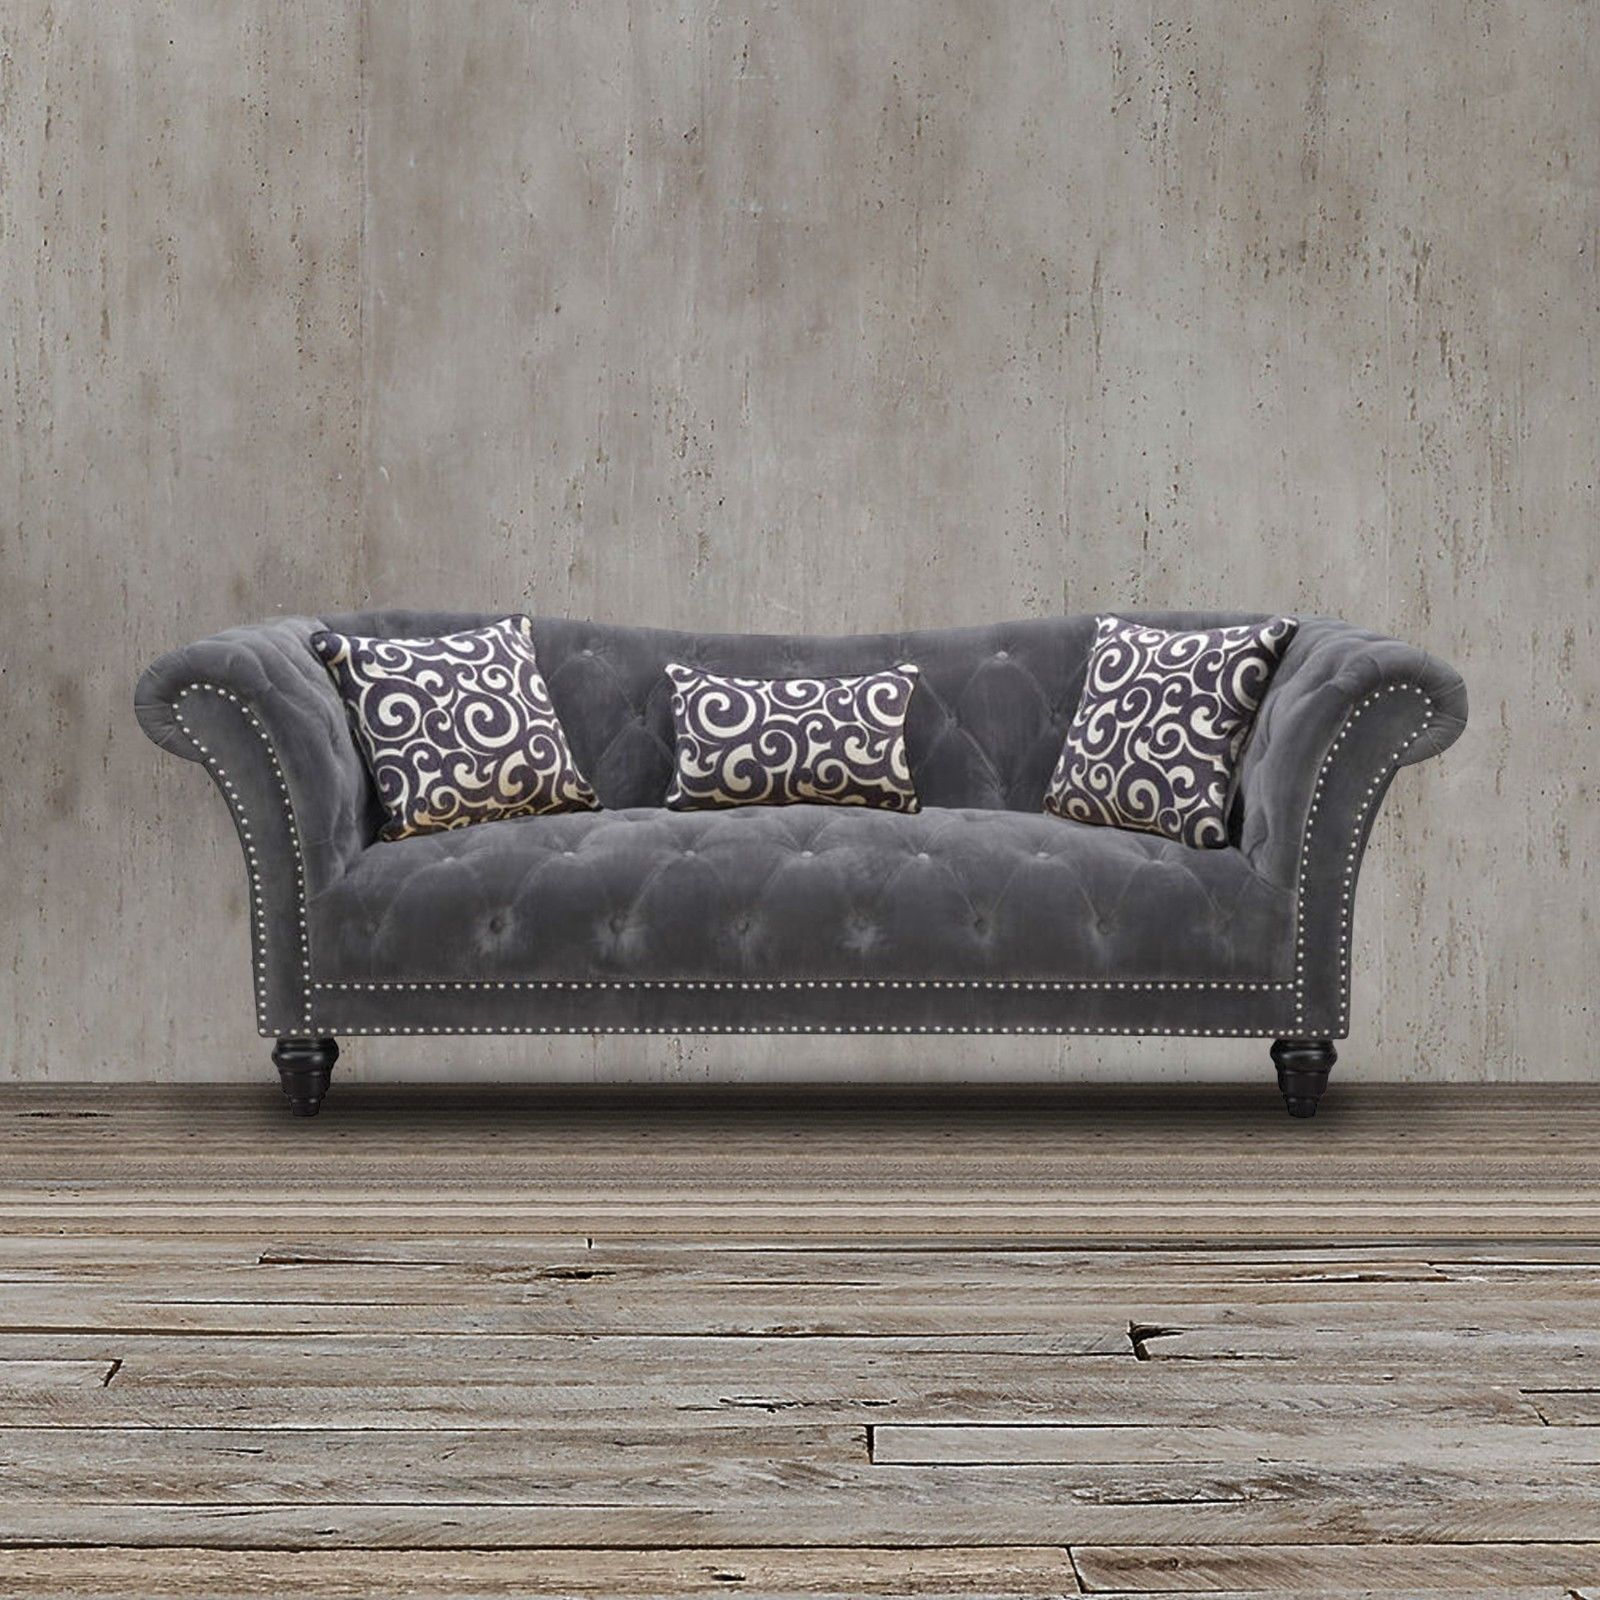 100 polyester sofa throws double bed ikea this gray nail head trimmed is upholstered in